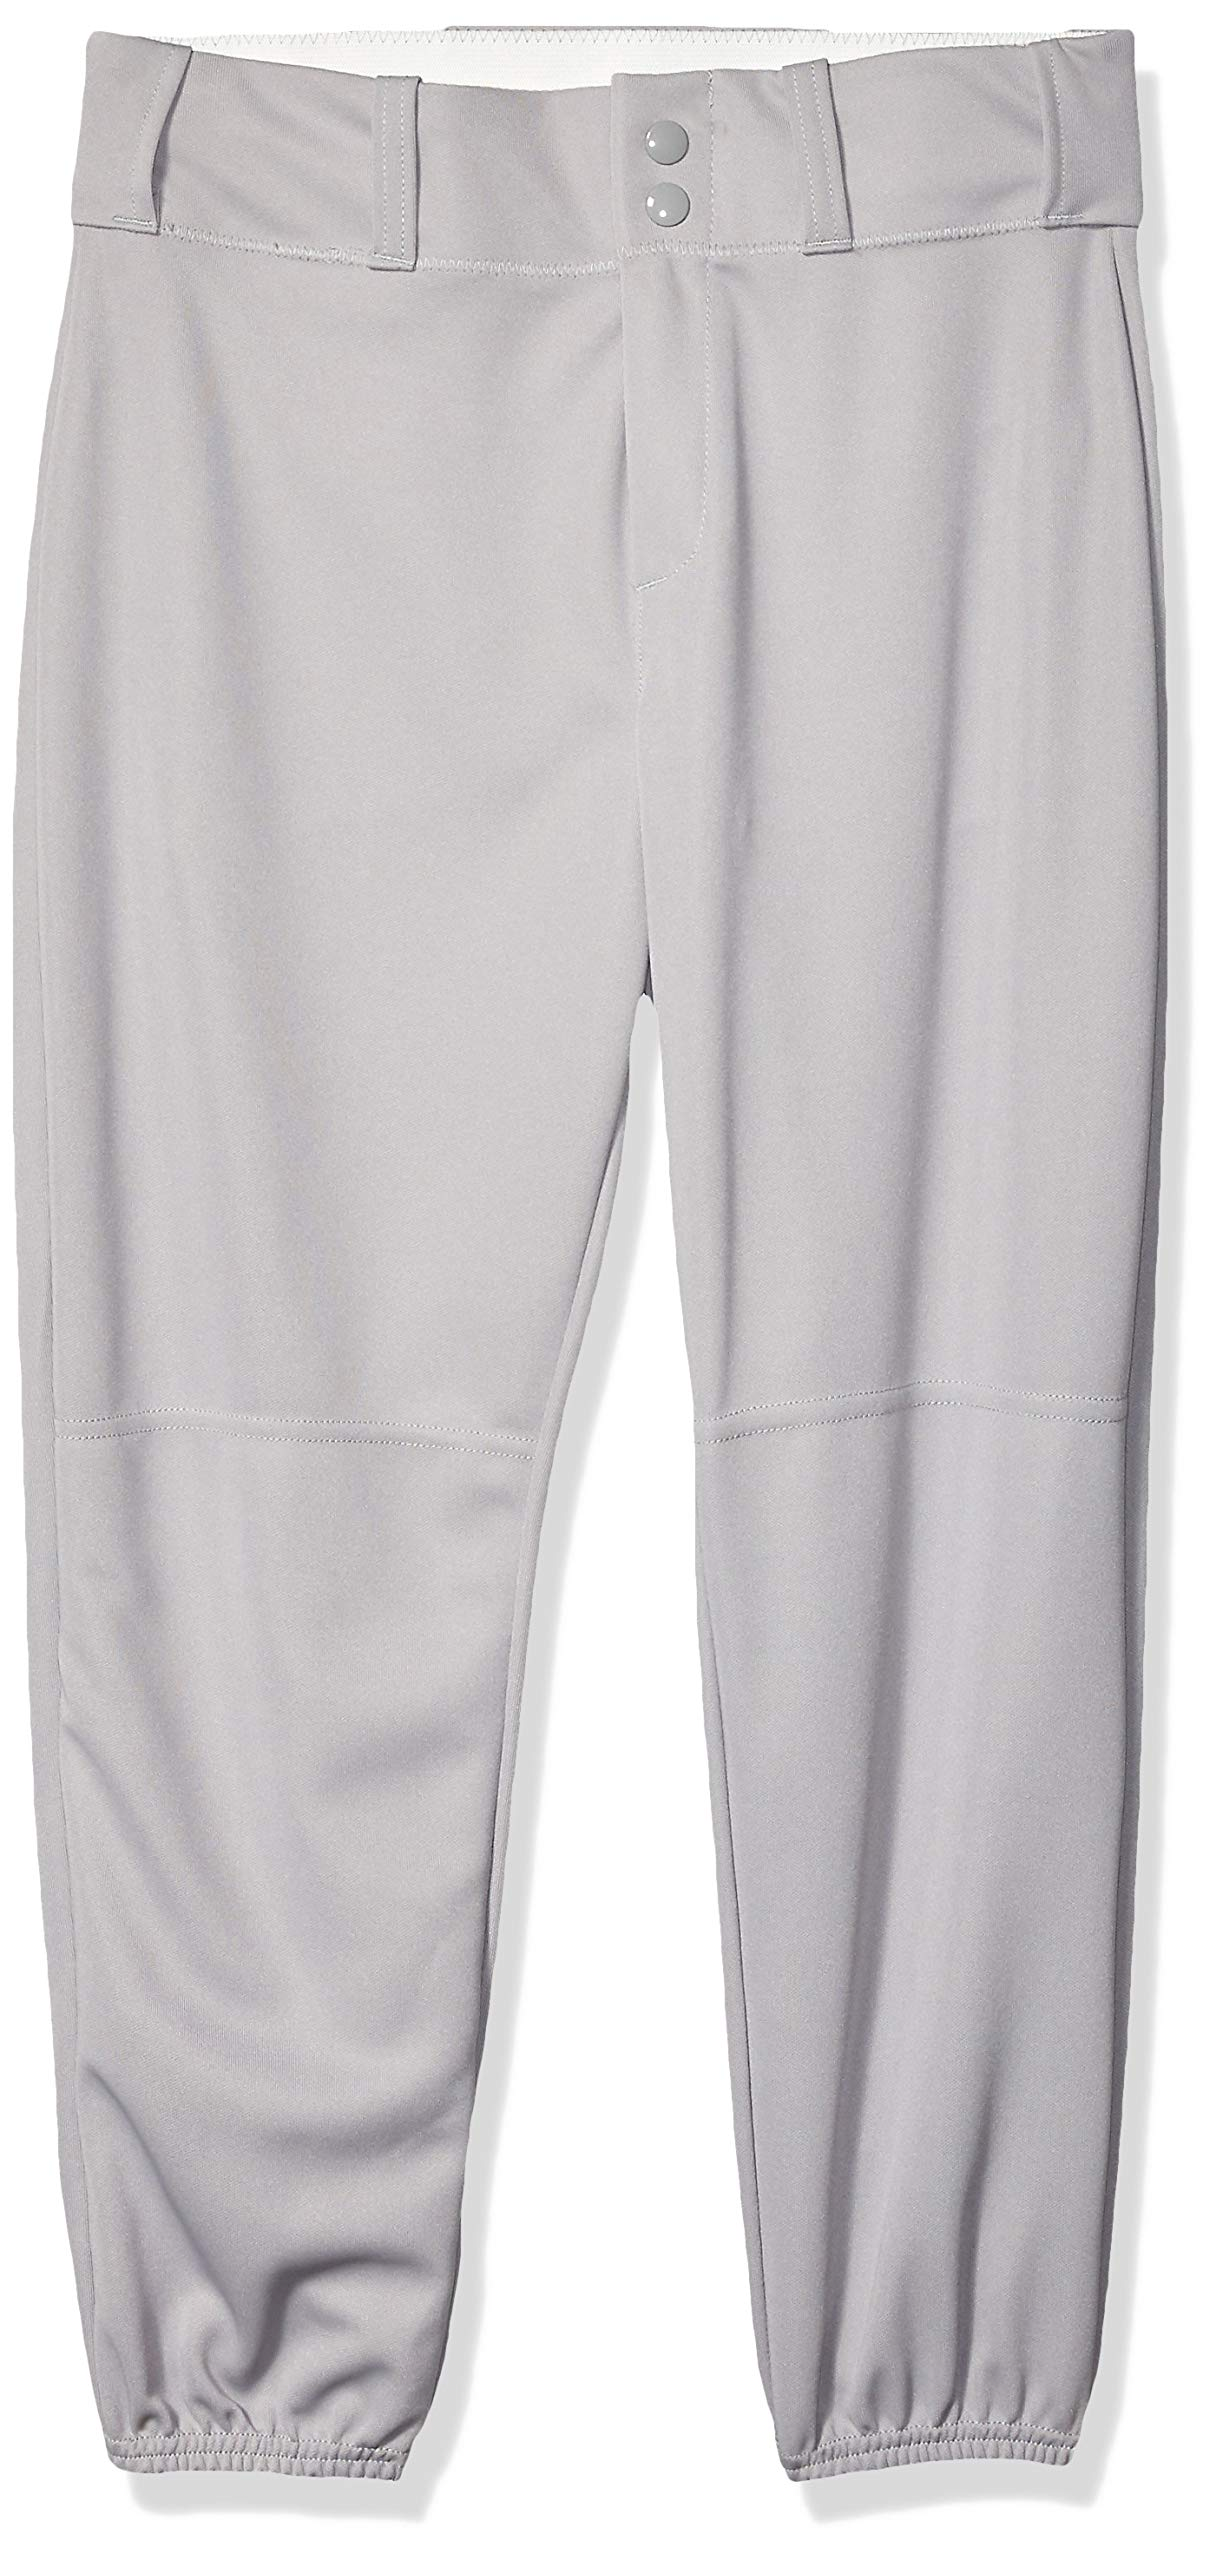 Alleson Ahtletic Boys Youth Elastic Bottom Baseball Pants, Grey, Large by Alleson Ahtletic